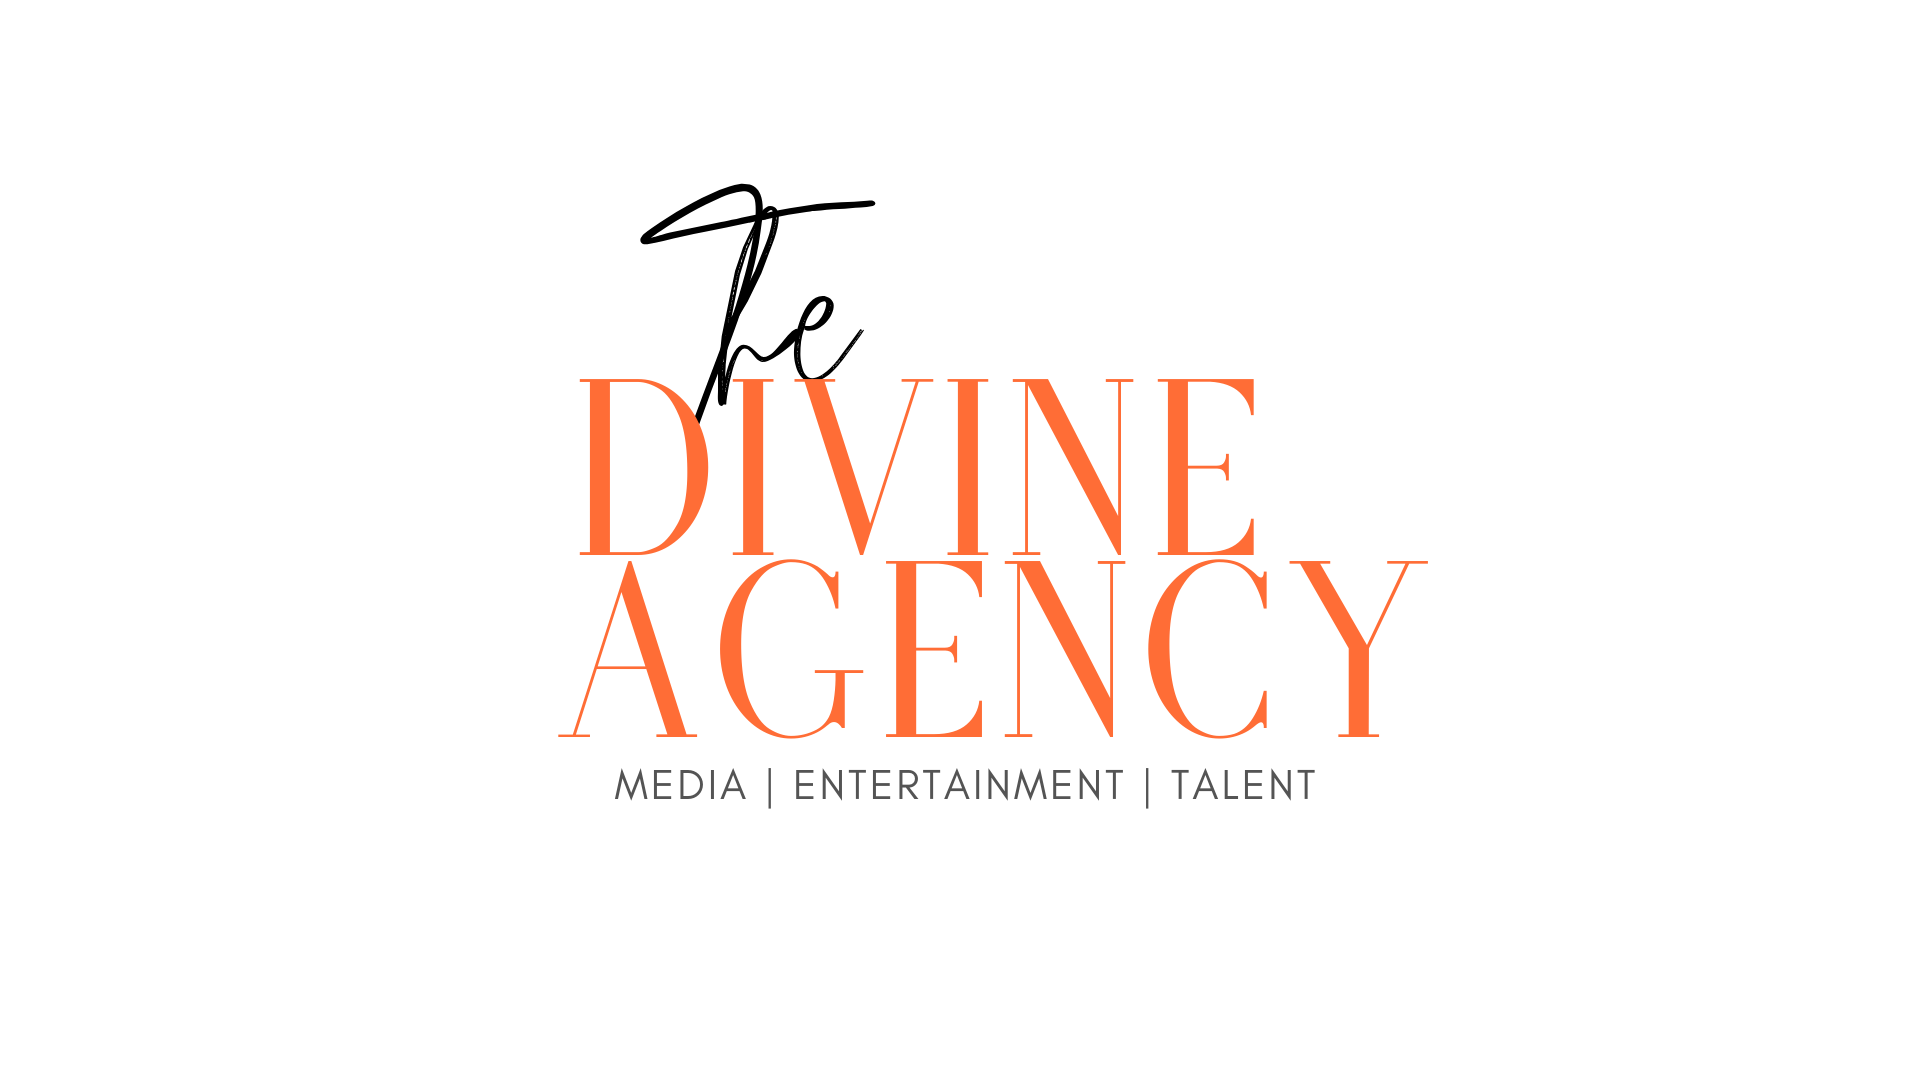 The Divine Agency Marketplace